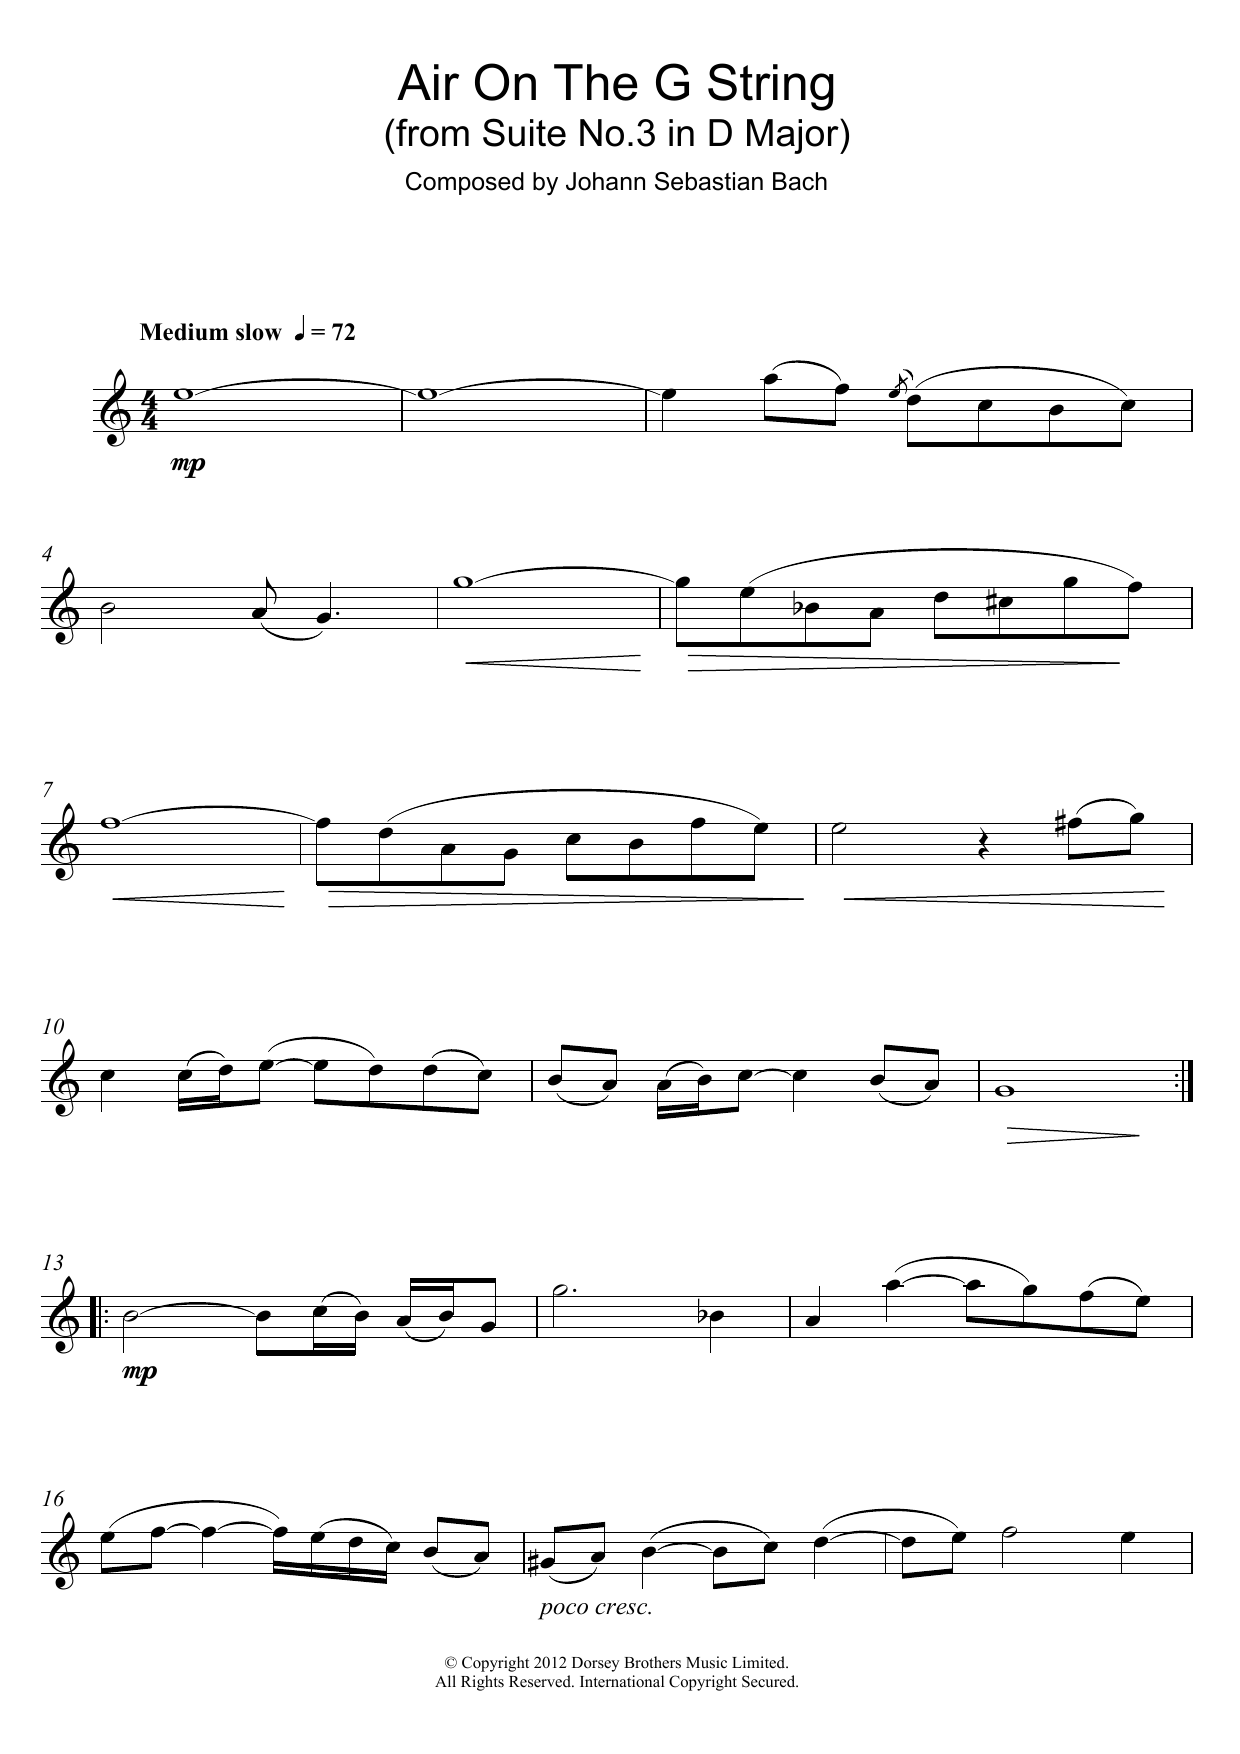 J.S. Bach - Air On The G String (from Suite No.3 in D Major)